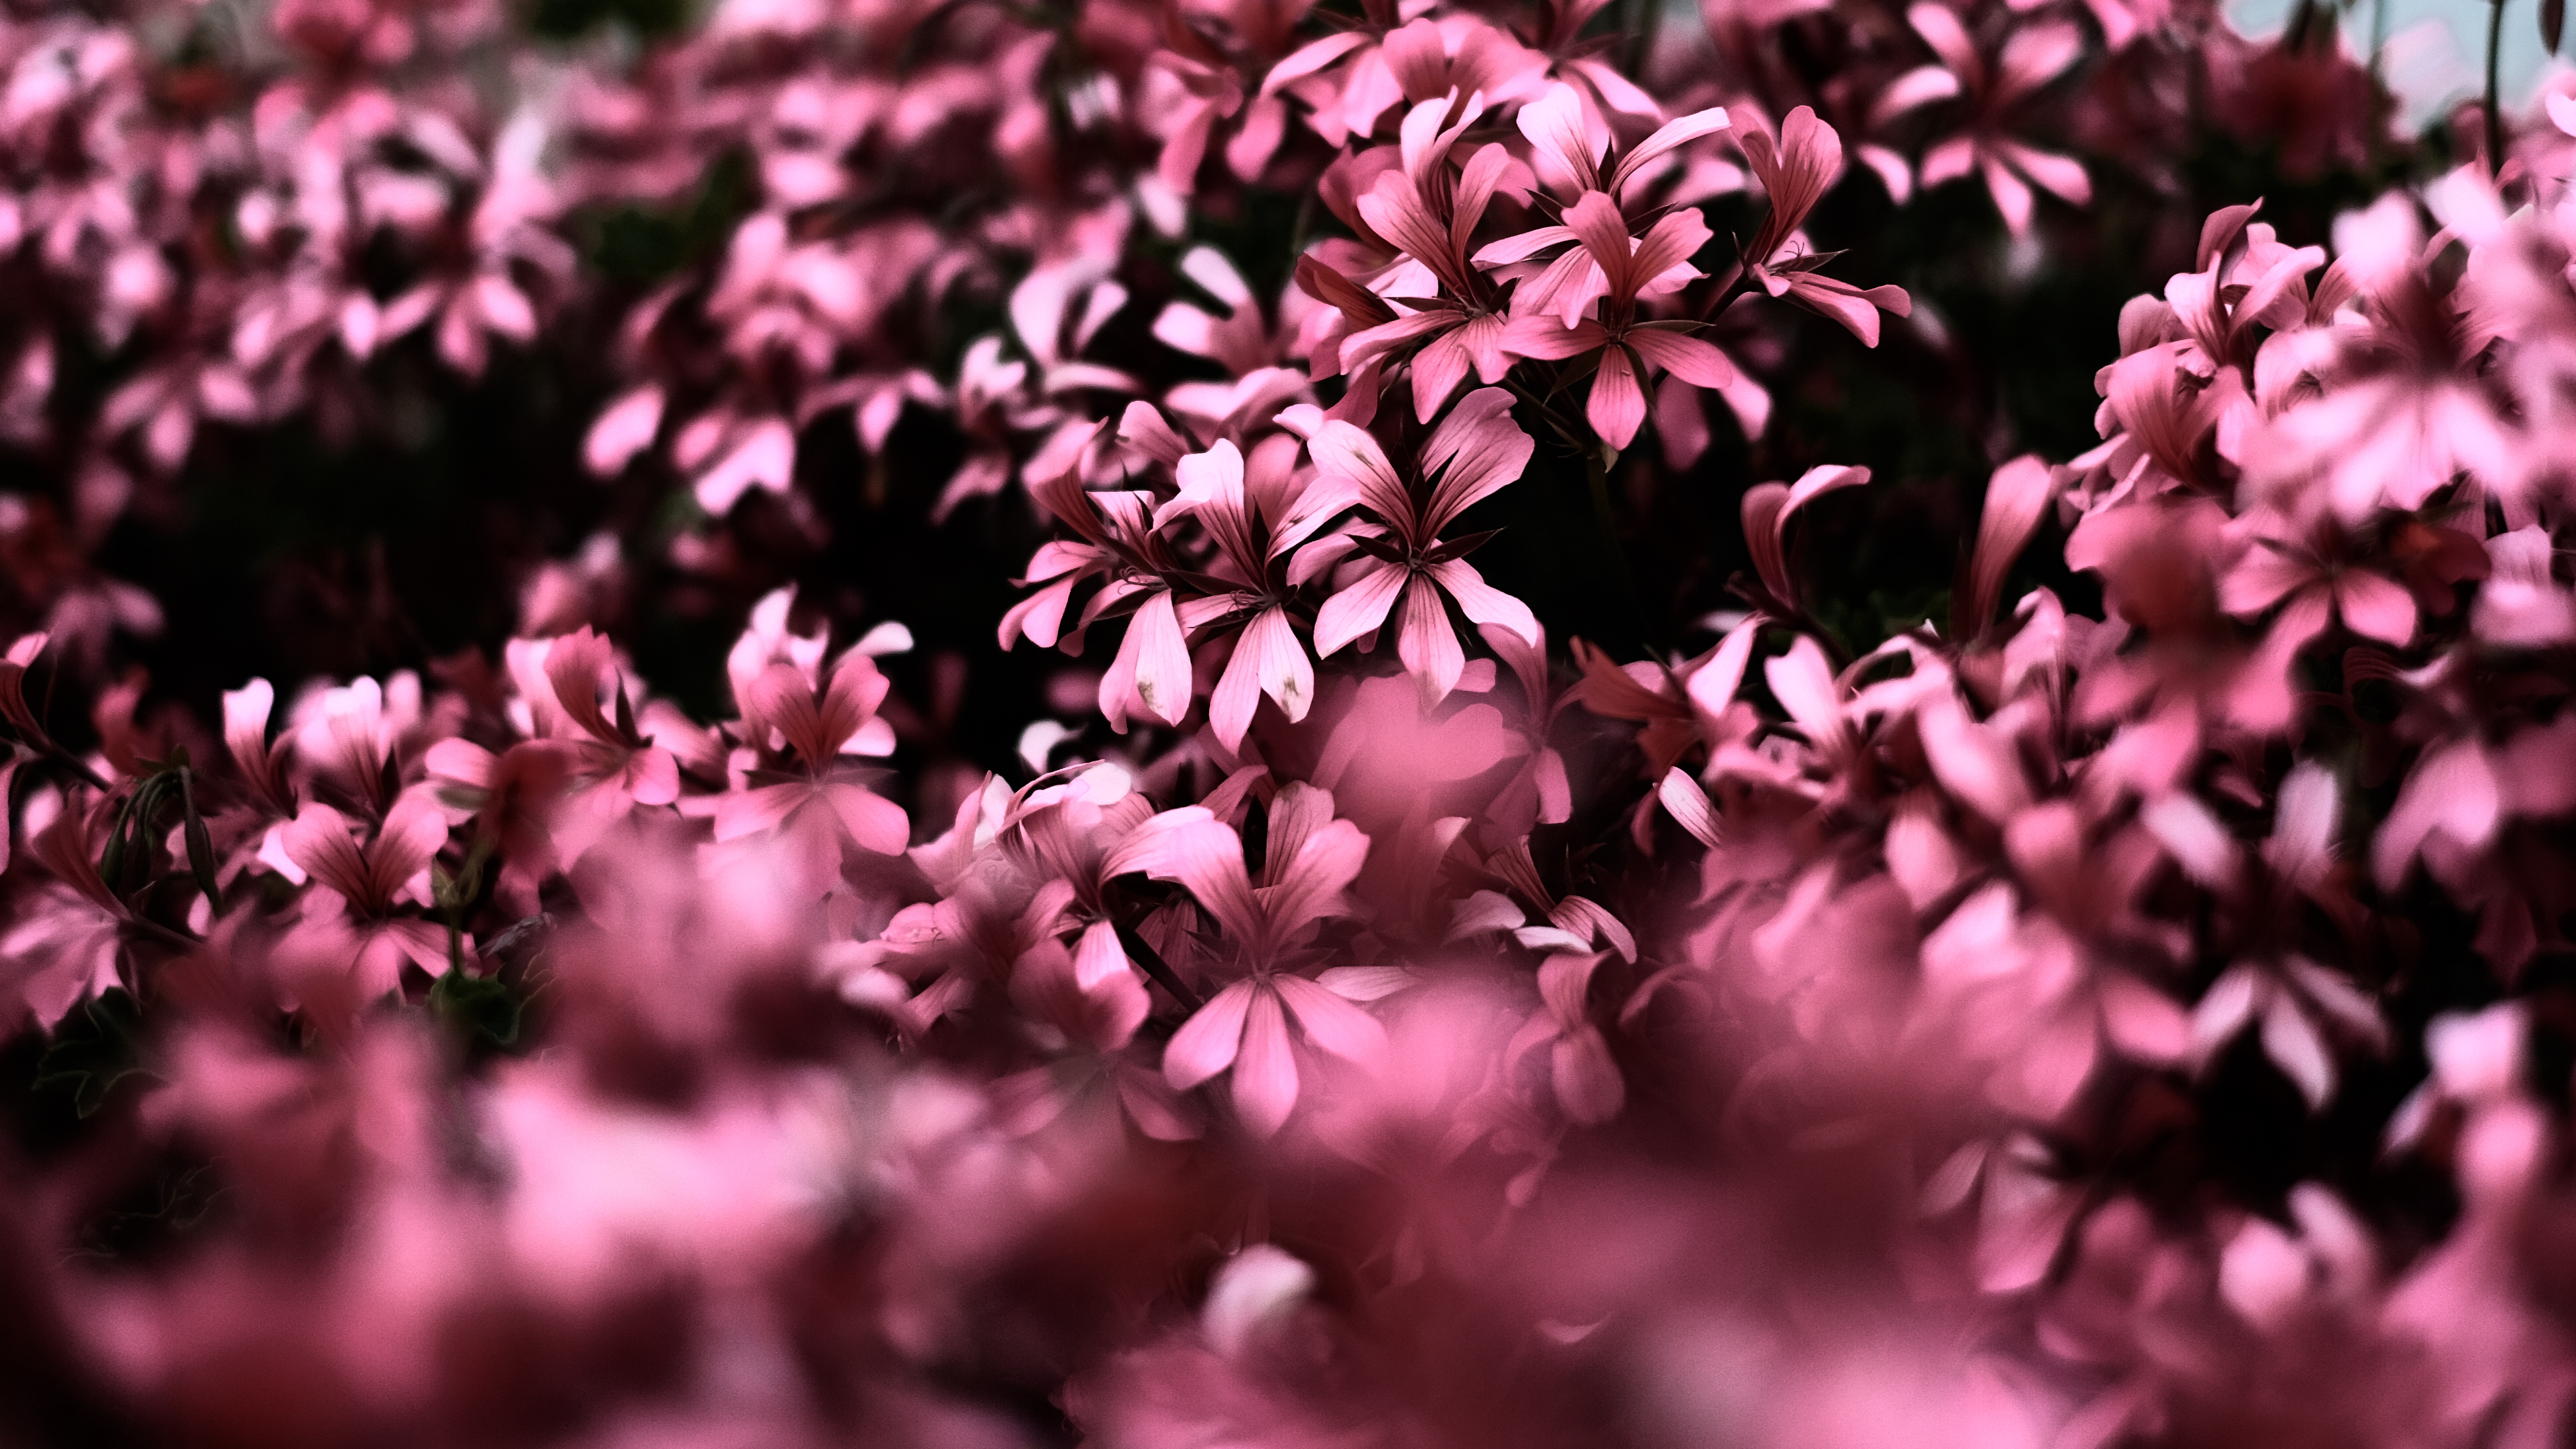 Pink Flowers Ultra Hd Blur 4k Hd Flowers 4k Wallpapers Images Backgrounds Photos And Pictures